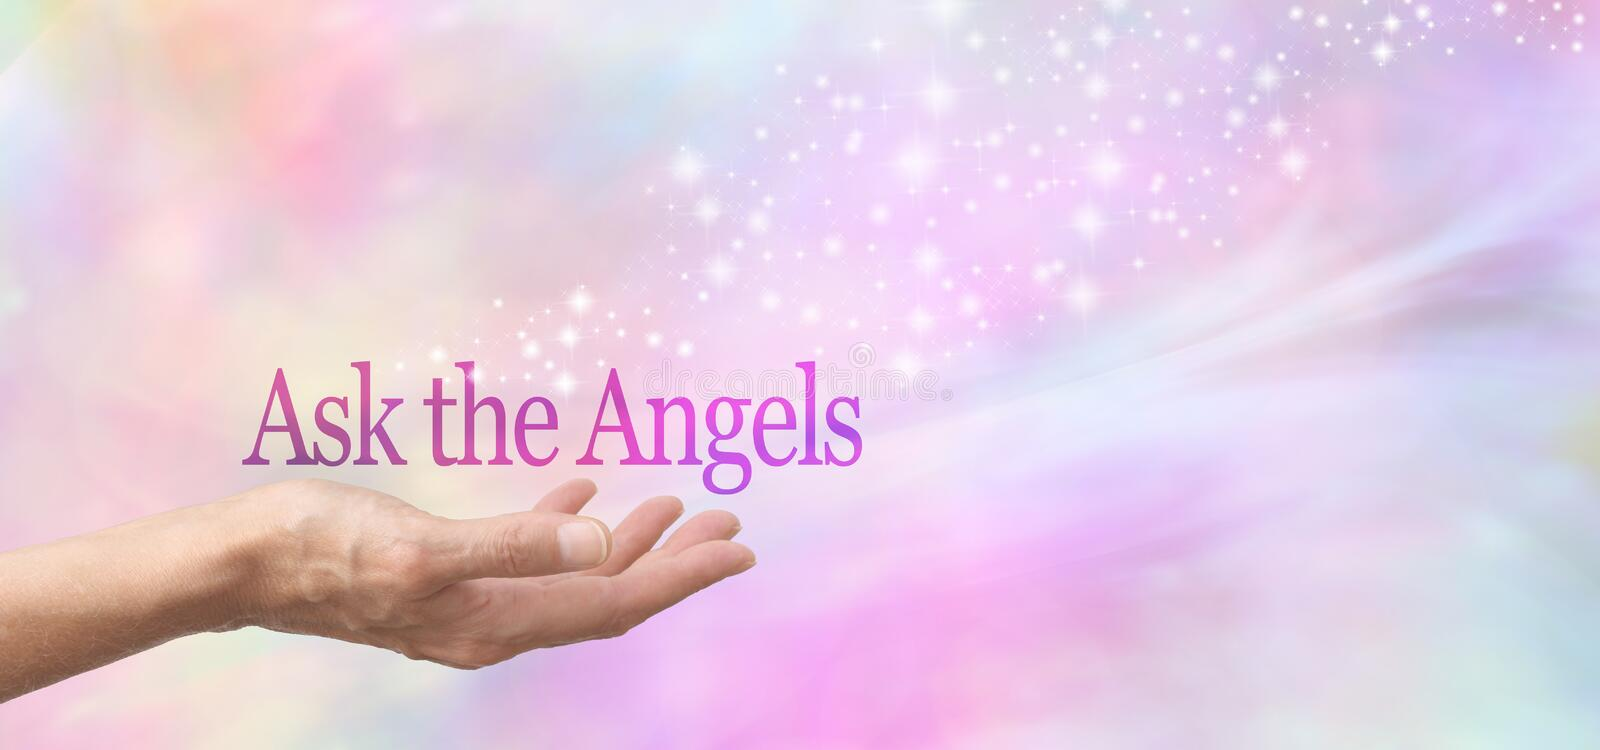 Ask the Angels for Help. Female hand face up with the words Ask the Angels floating above on a misty pastel bokeh background and a stream of sparkles flowing